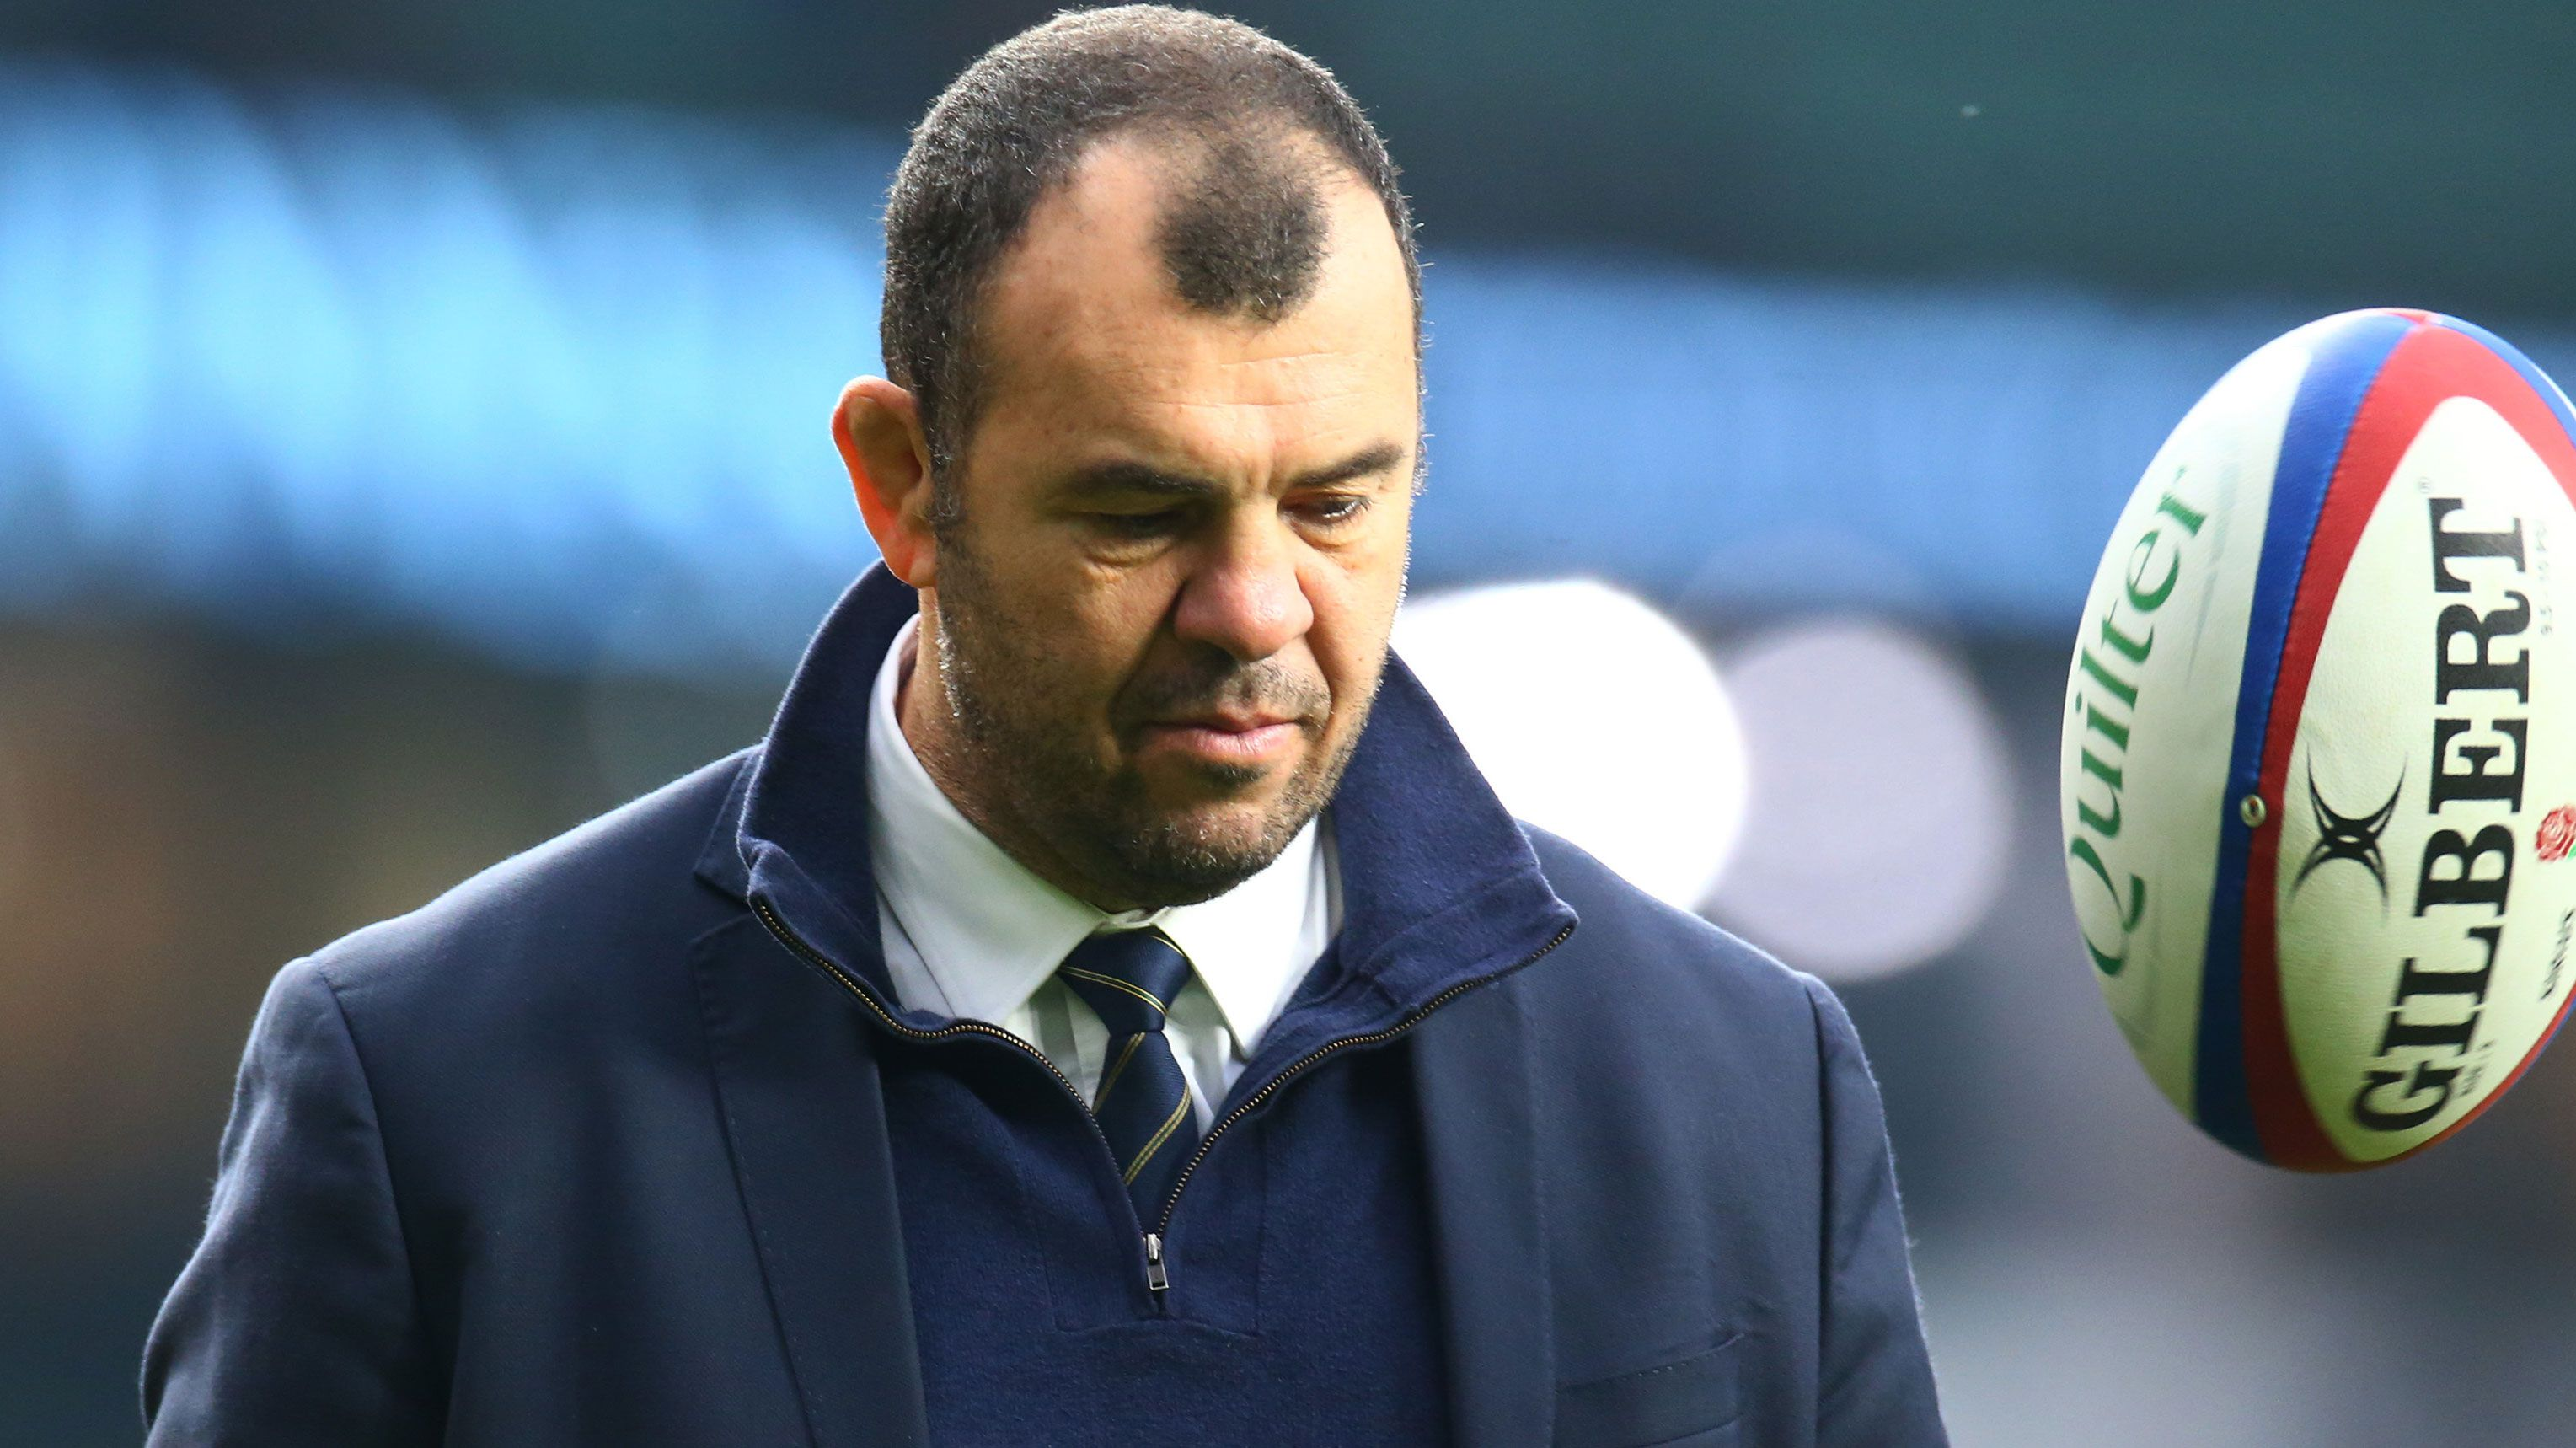 Pressure mounts on Rugby Australia to sack Wallabies coach Michael Cheika